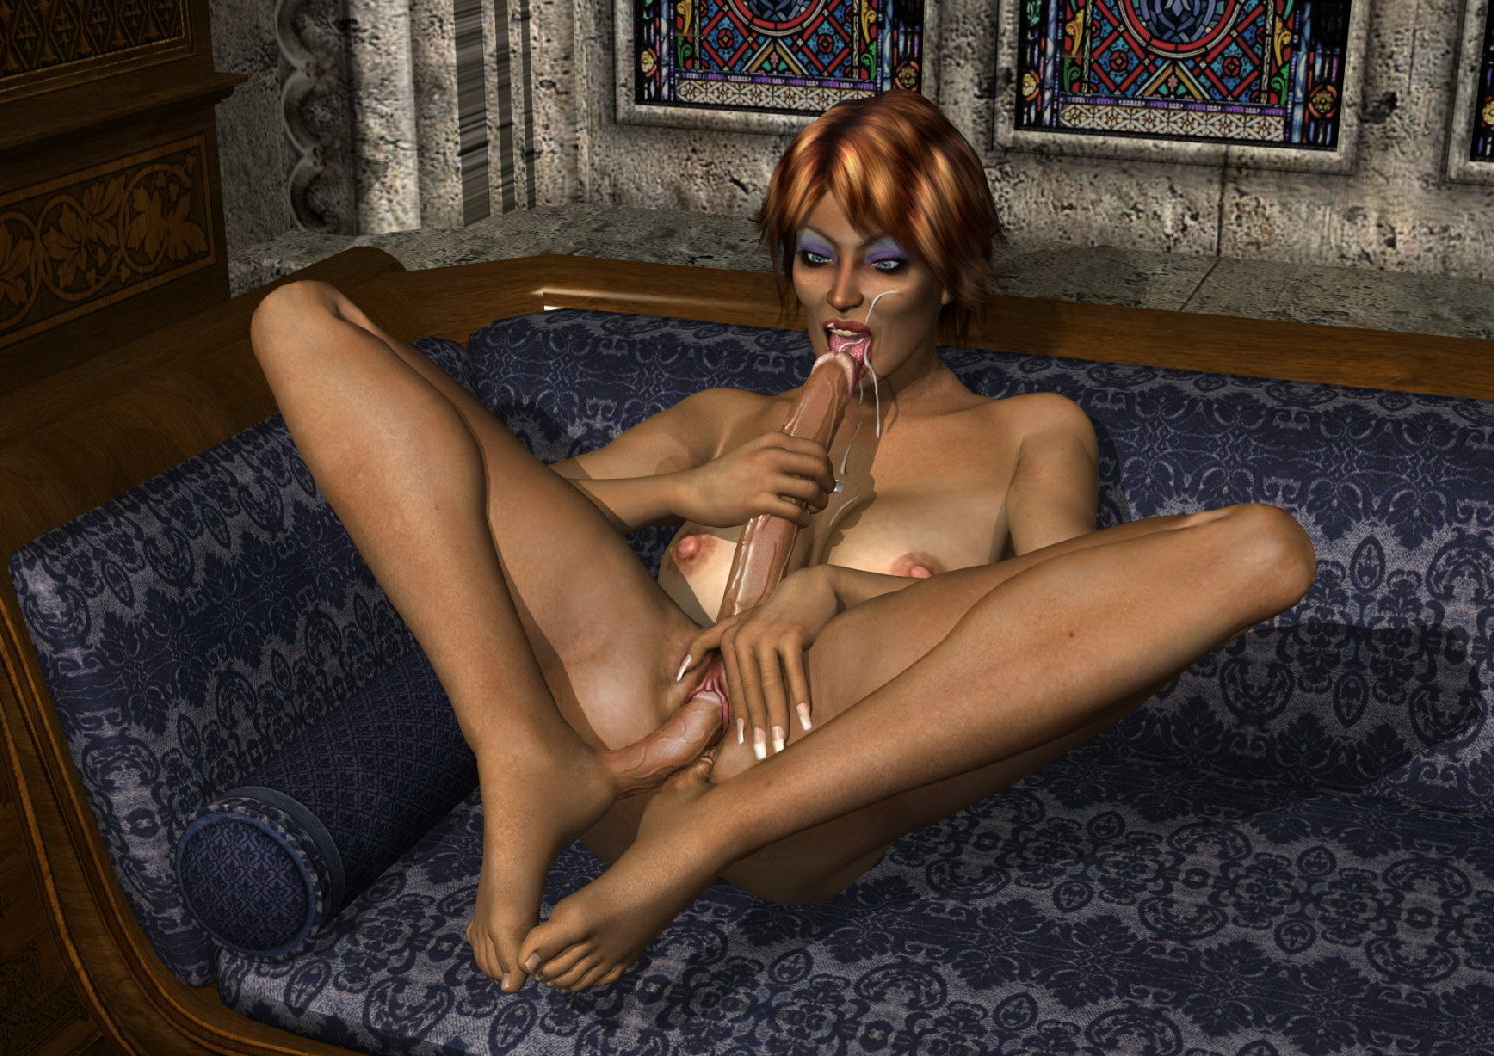 Hot nd sexy images of naked women  porn clips